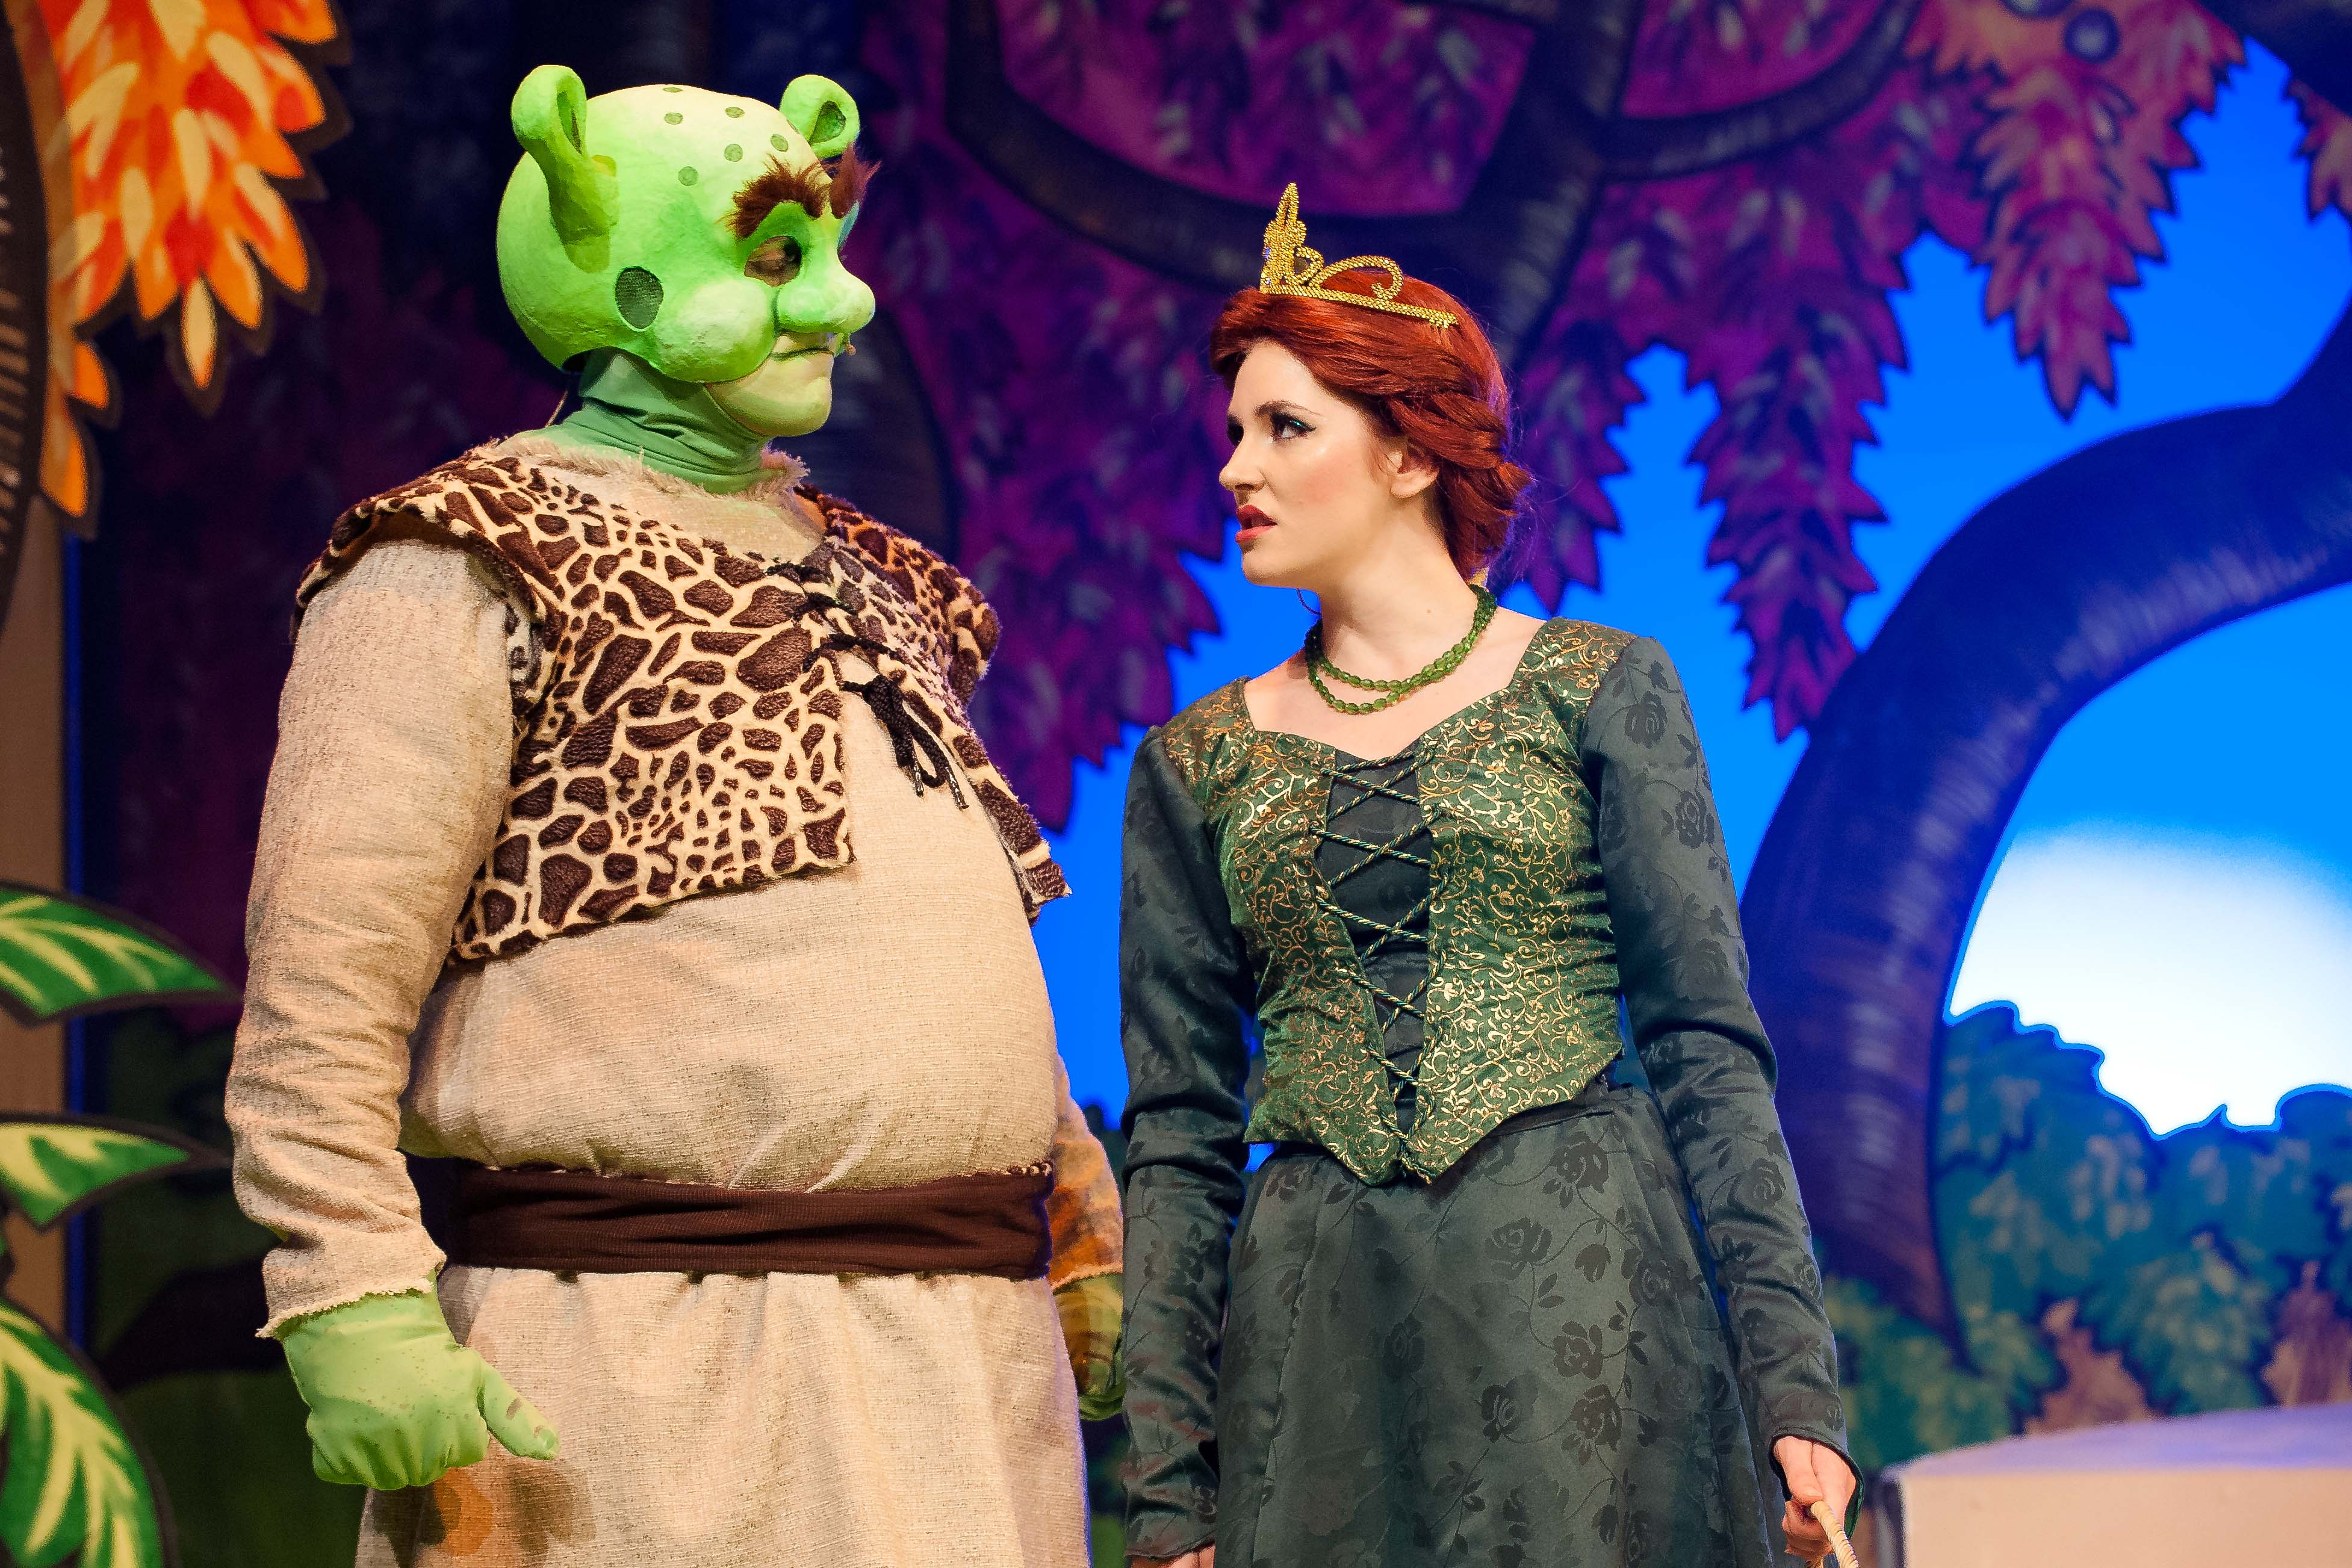 shrek the musical gorgeous in every way theluvvie